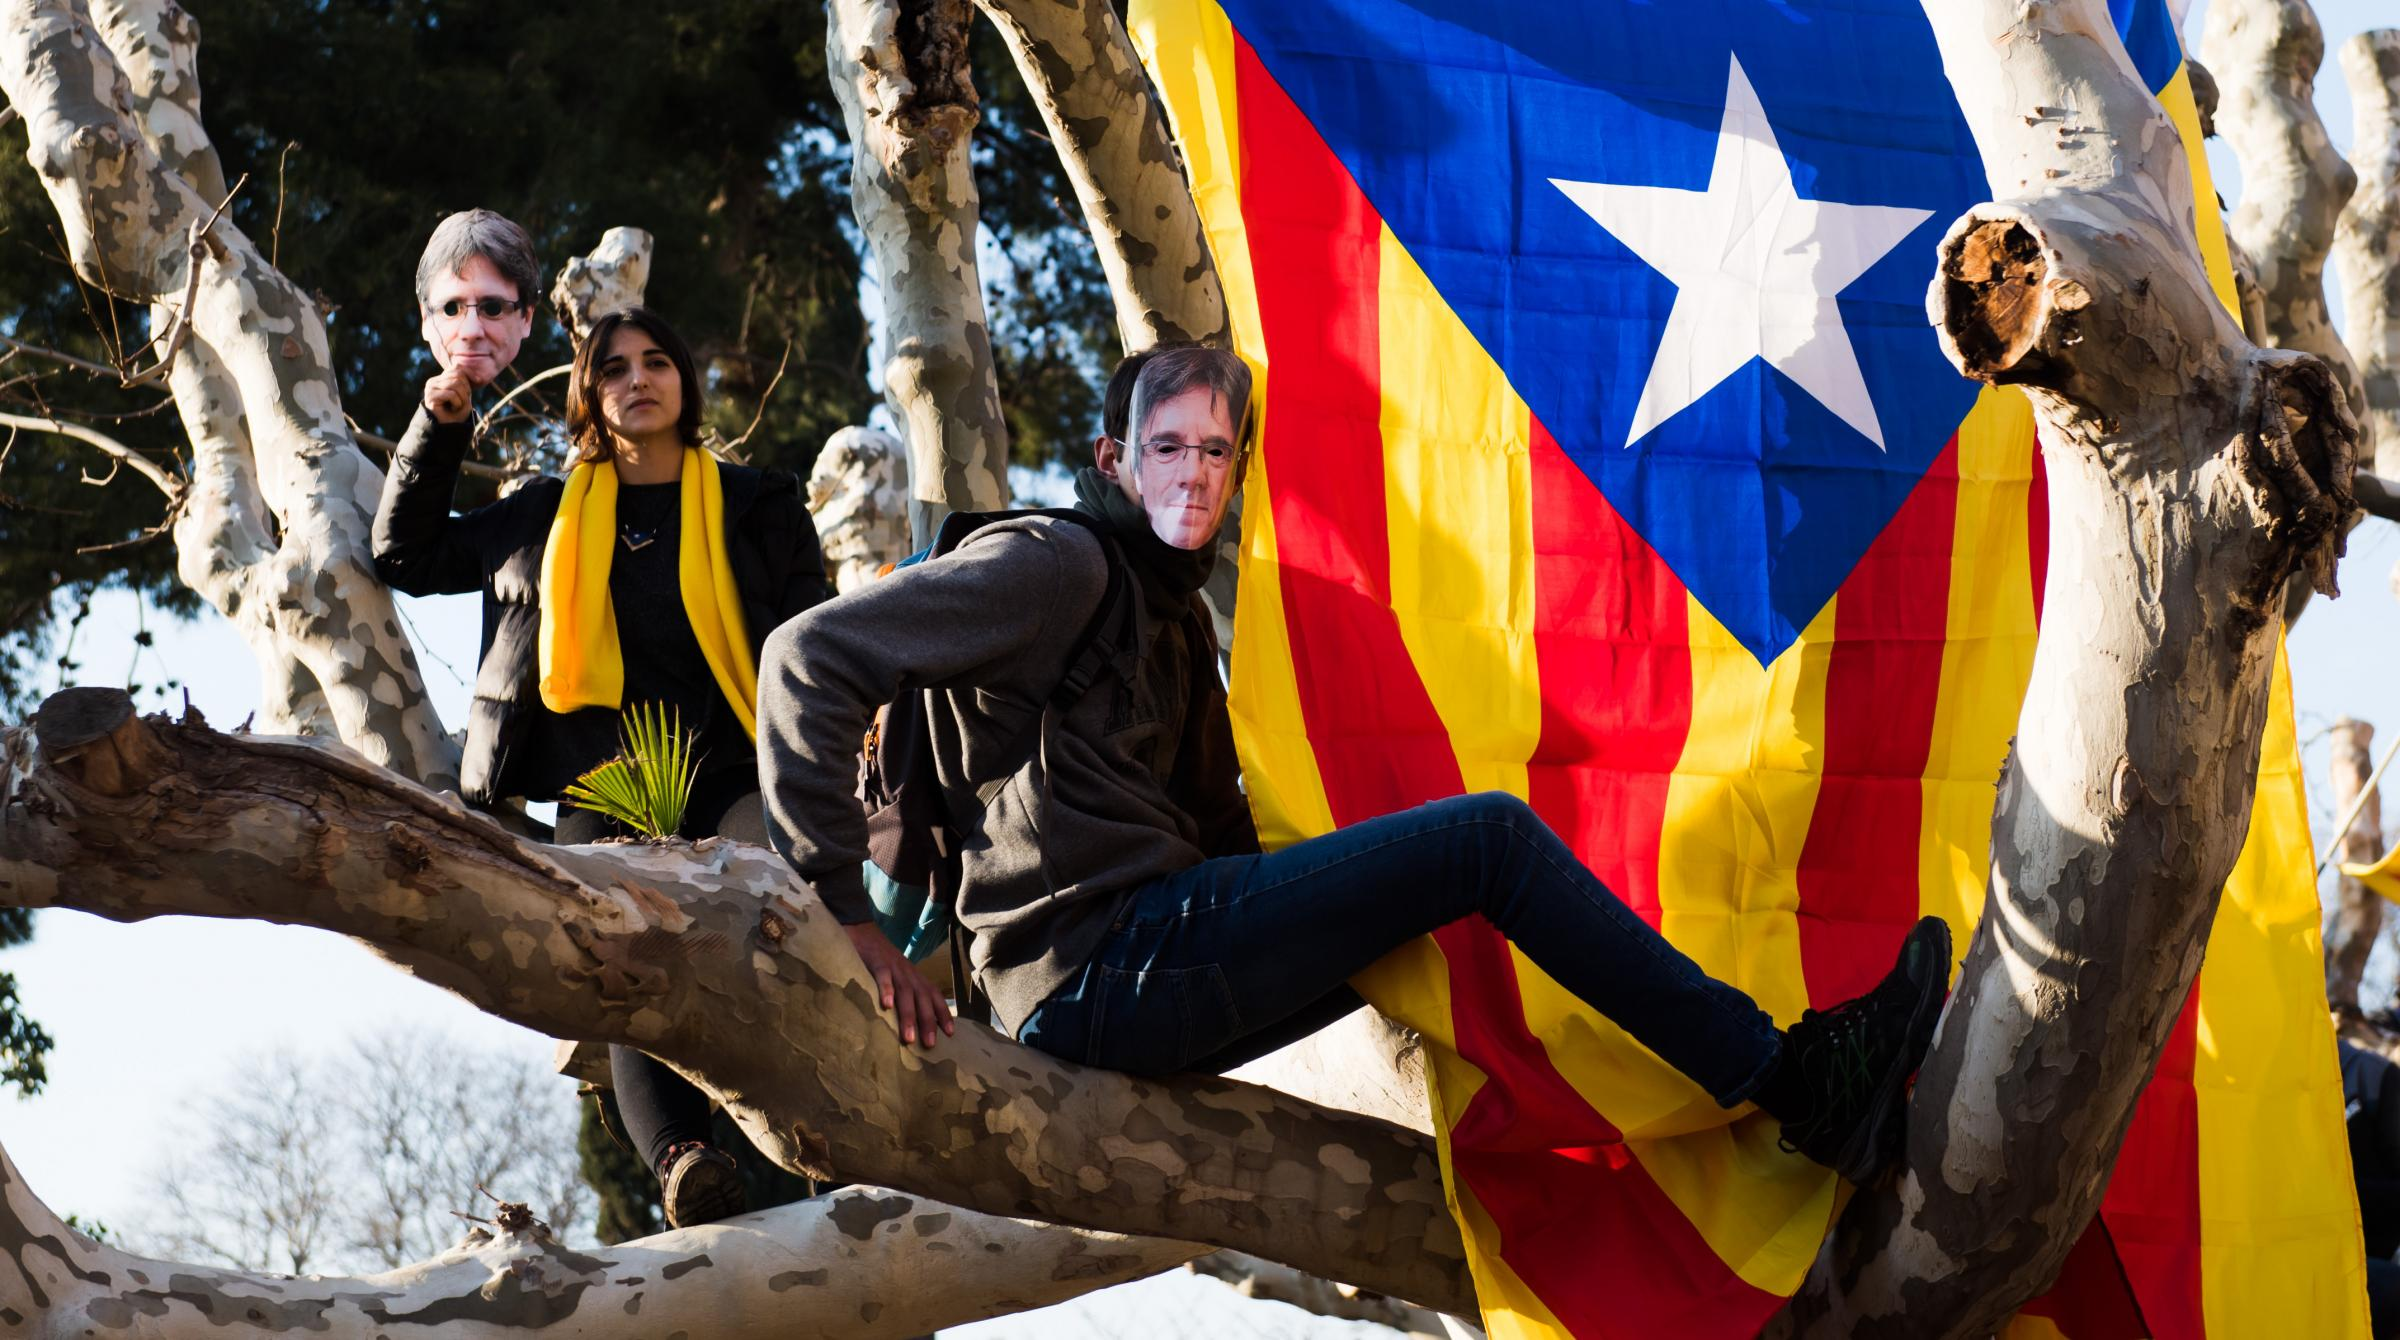 Demonstrators wore cut-out masks of Puigdemont as they protested in front of the Parliament of Catalonia on January 30 in Barcelona